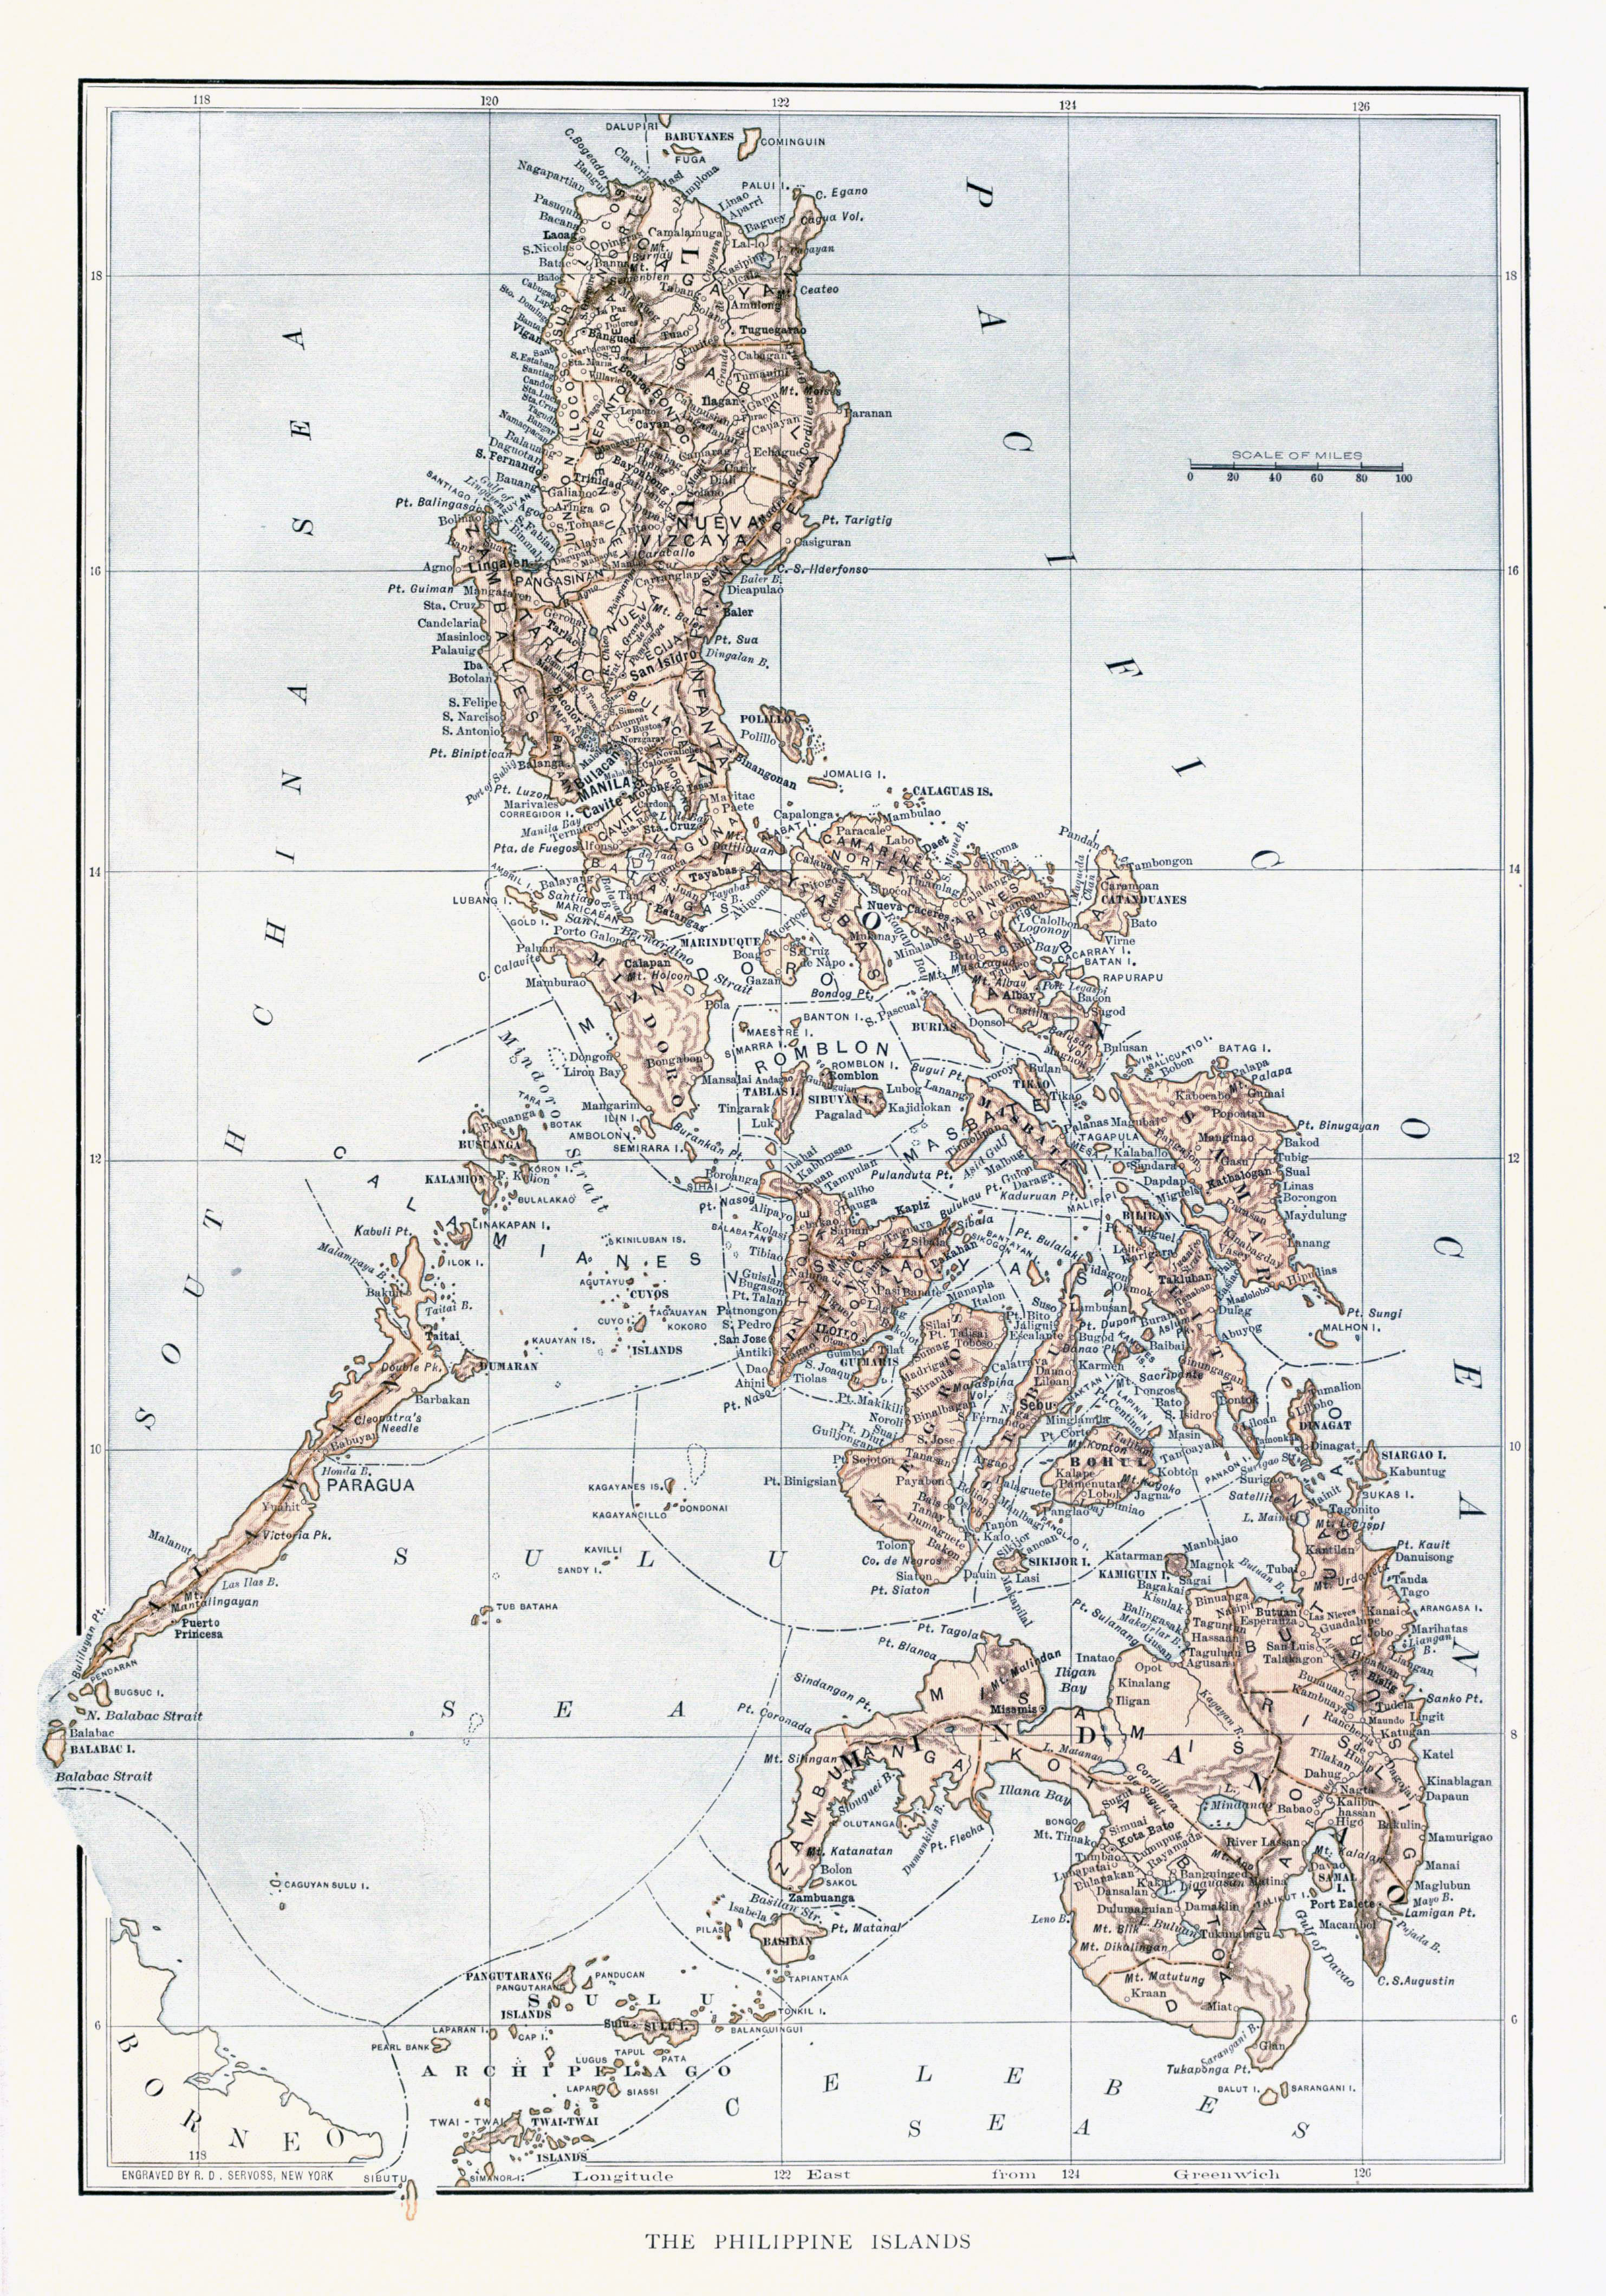 Map of the Philippines, unknown date.